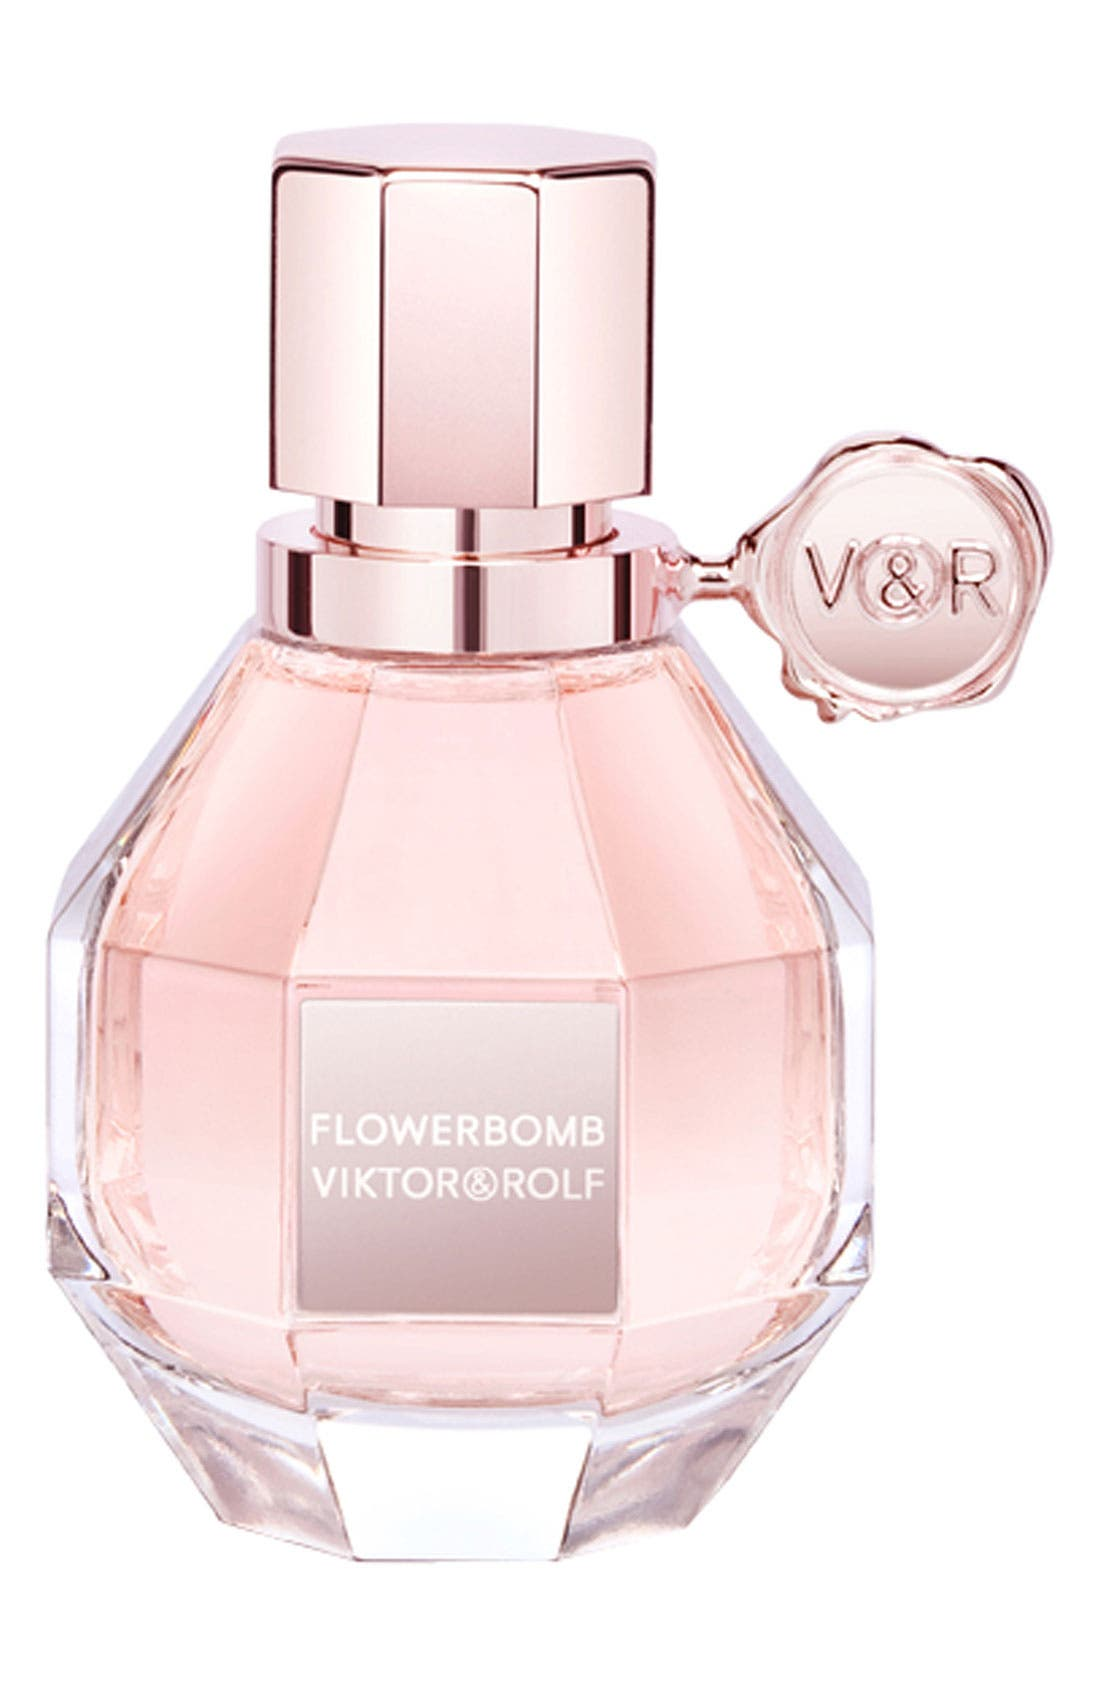 Viktor&Rolf 'Flowerbomb' Refillable Eau de Parfum Spray